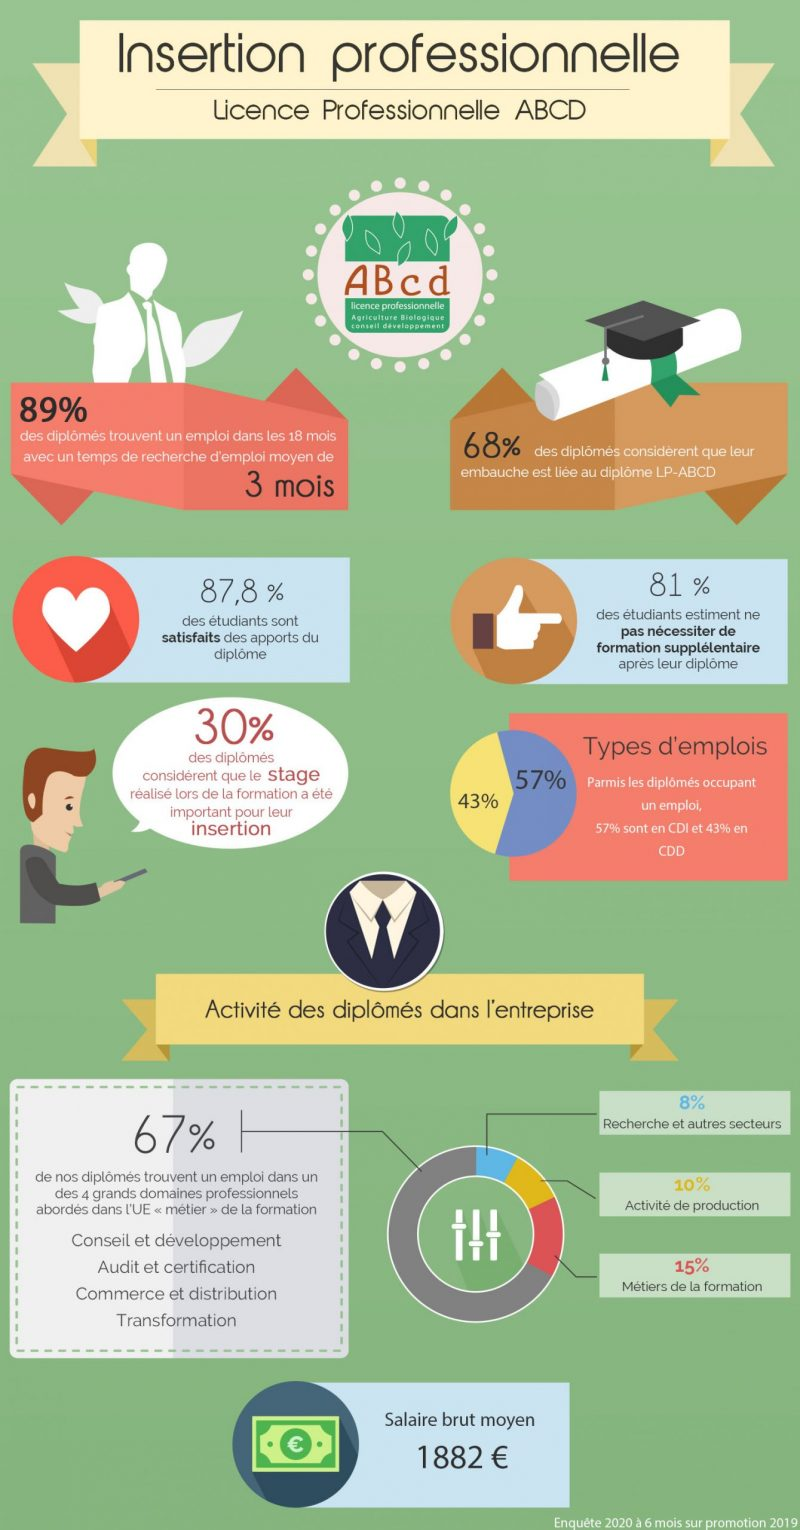 infographie insertion